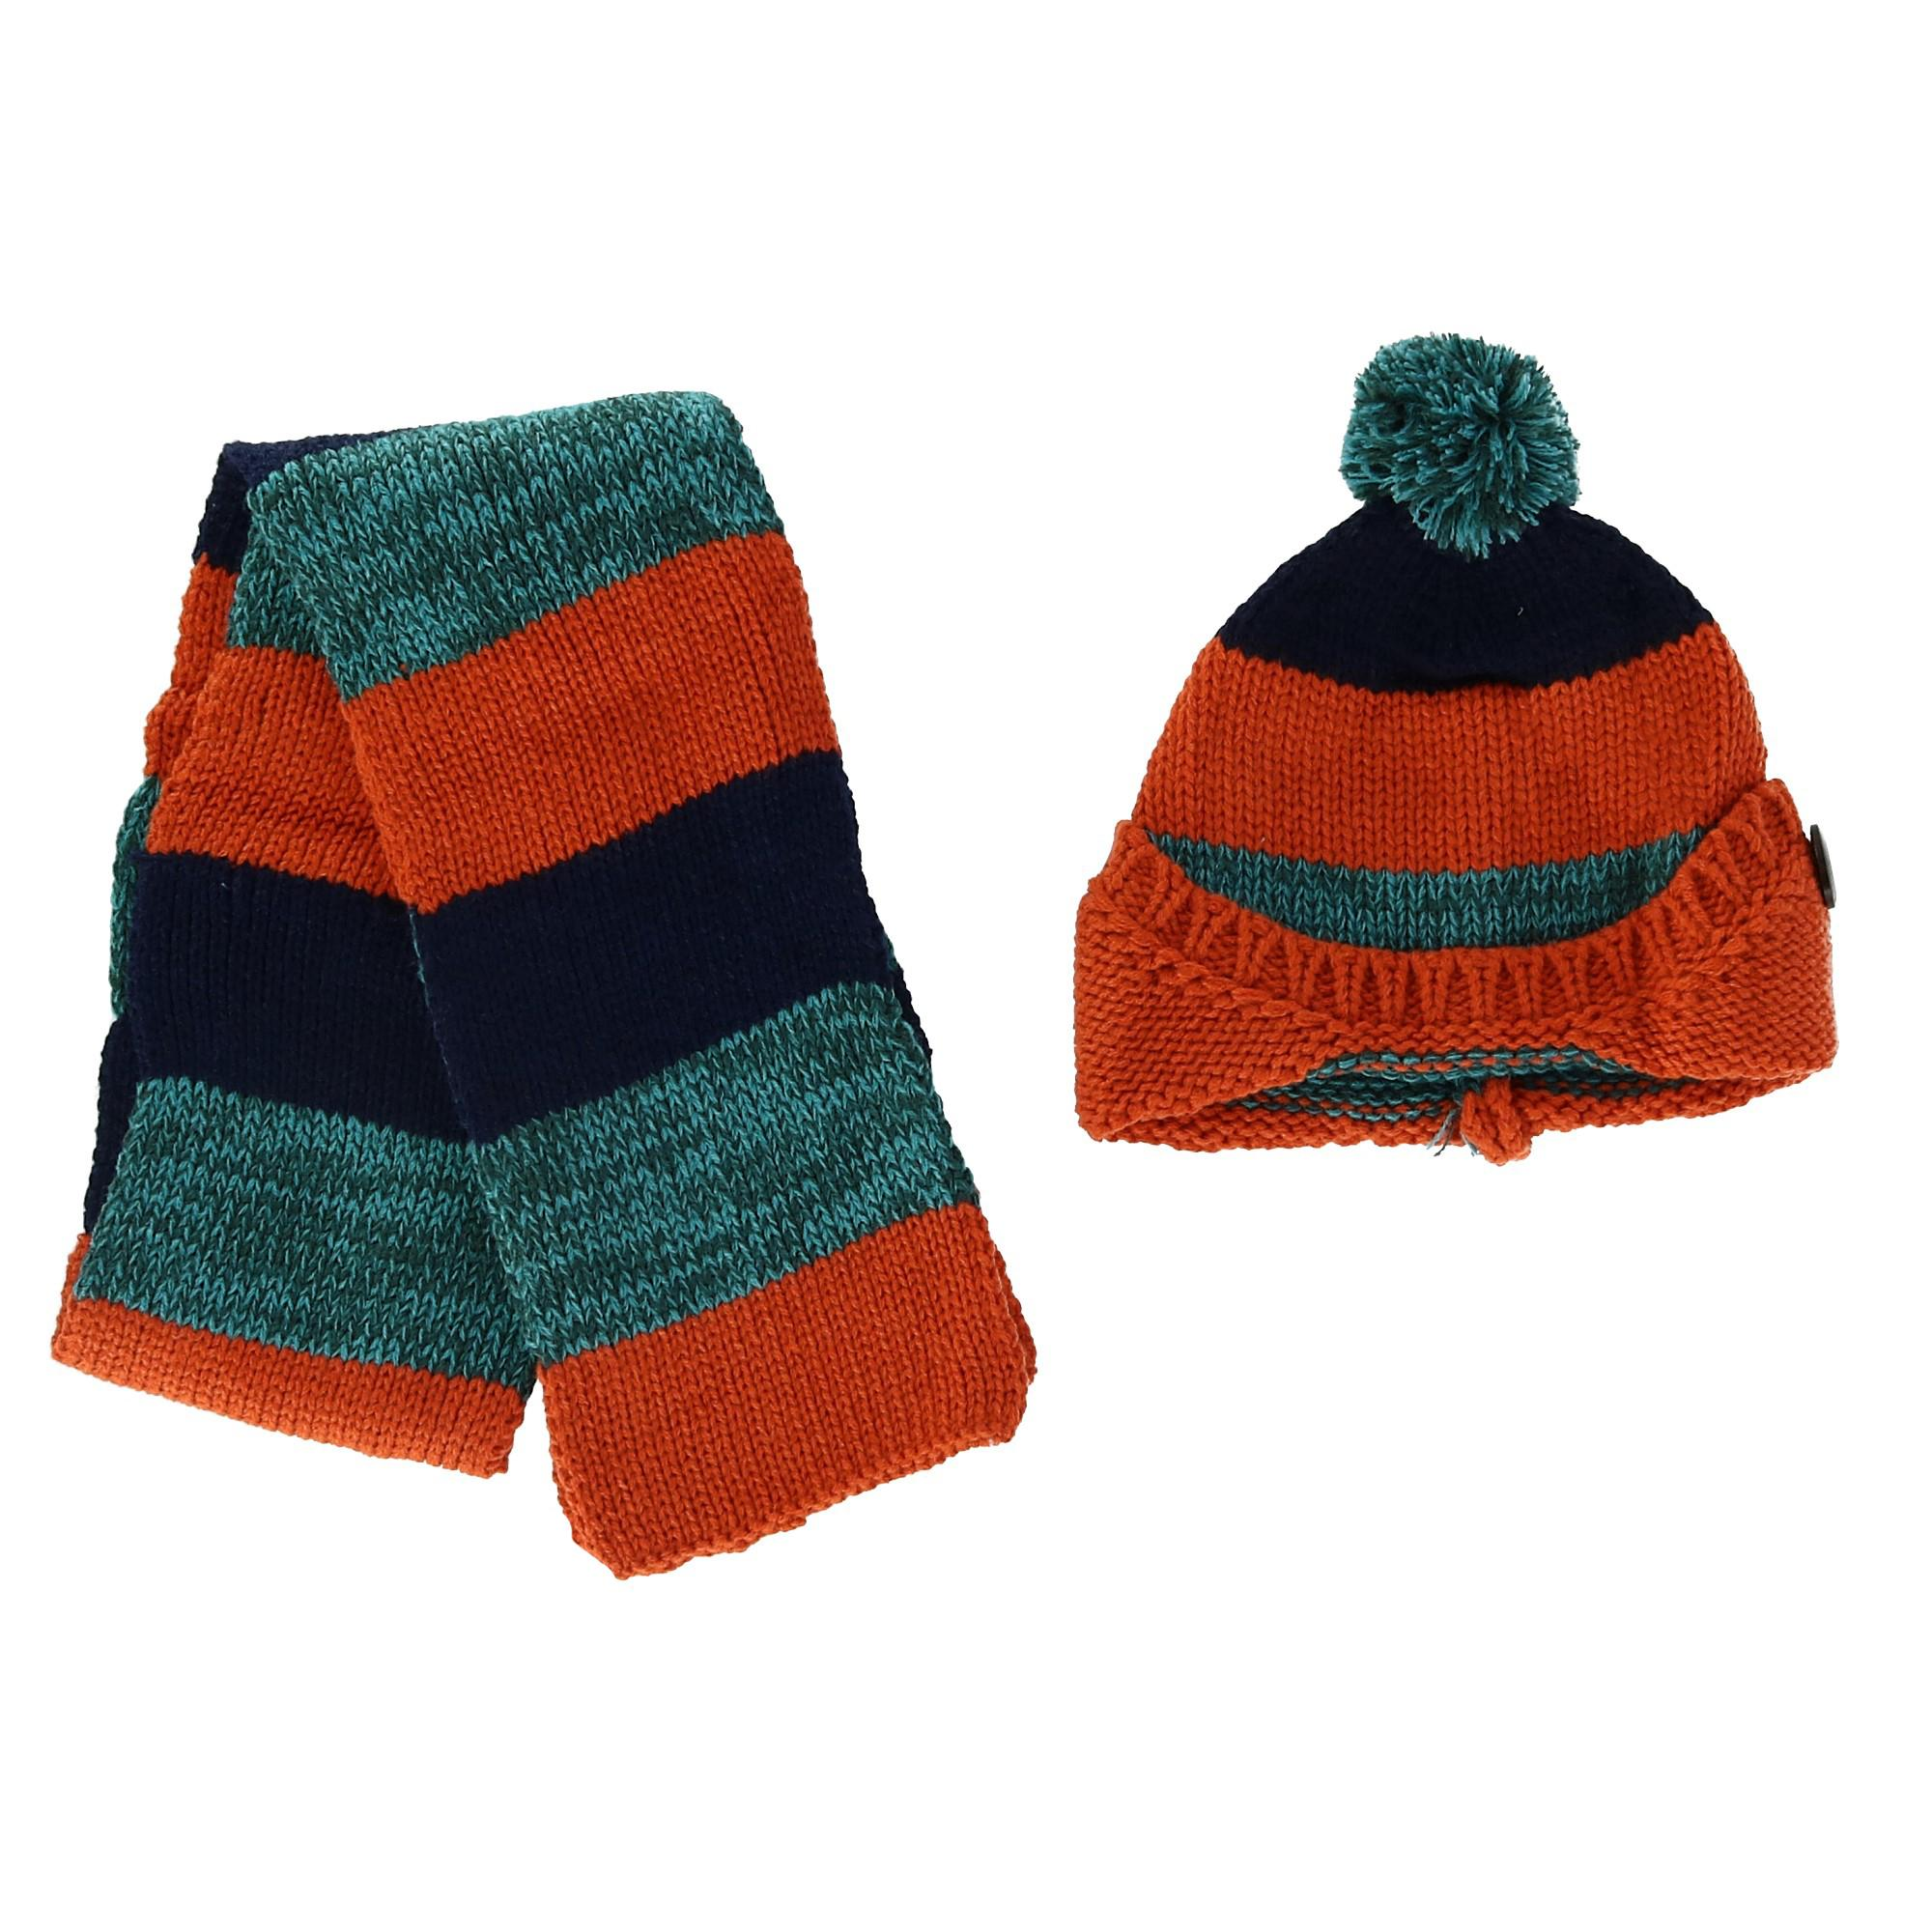 Foemo Kids' Knitted Scarf and Beanie with